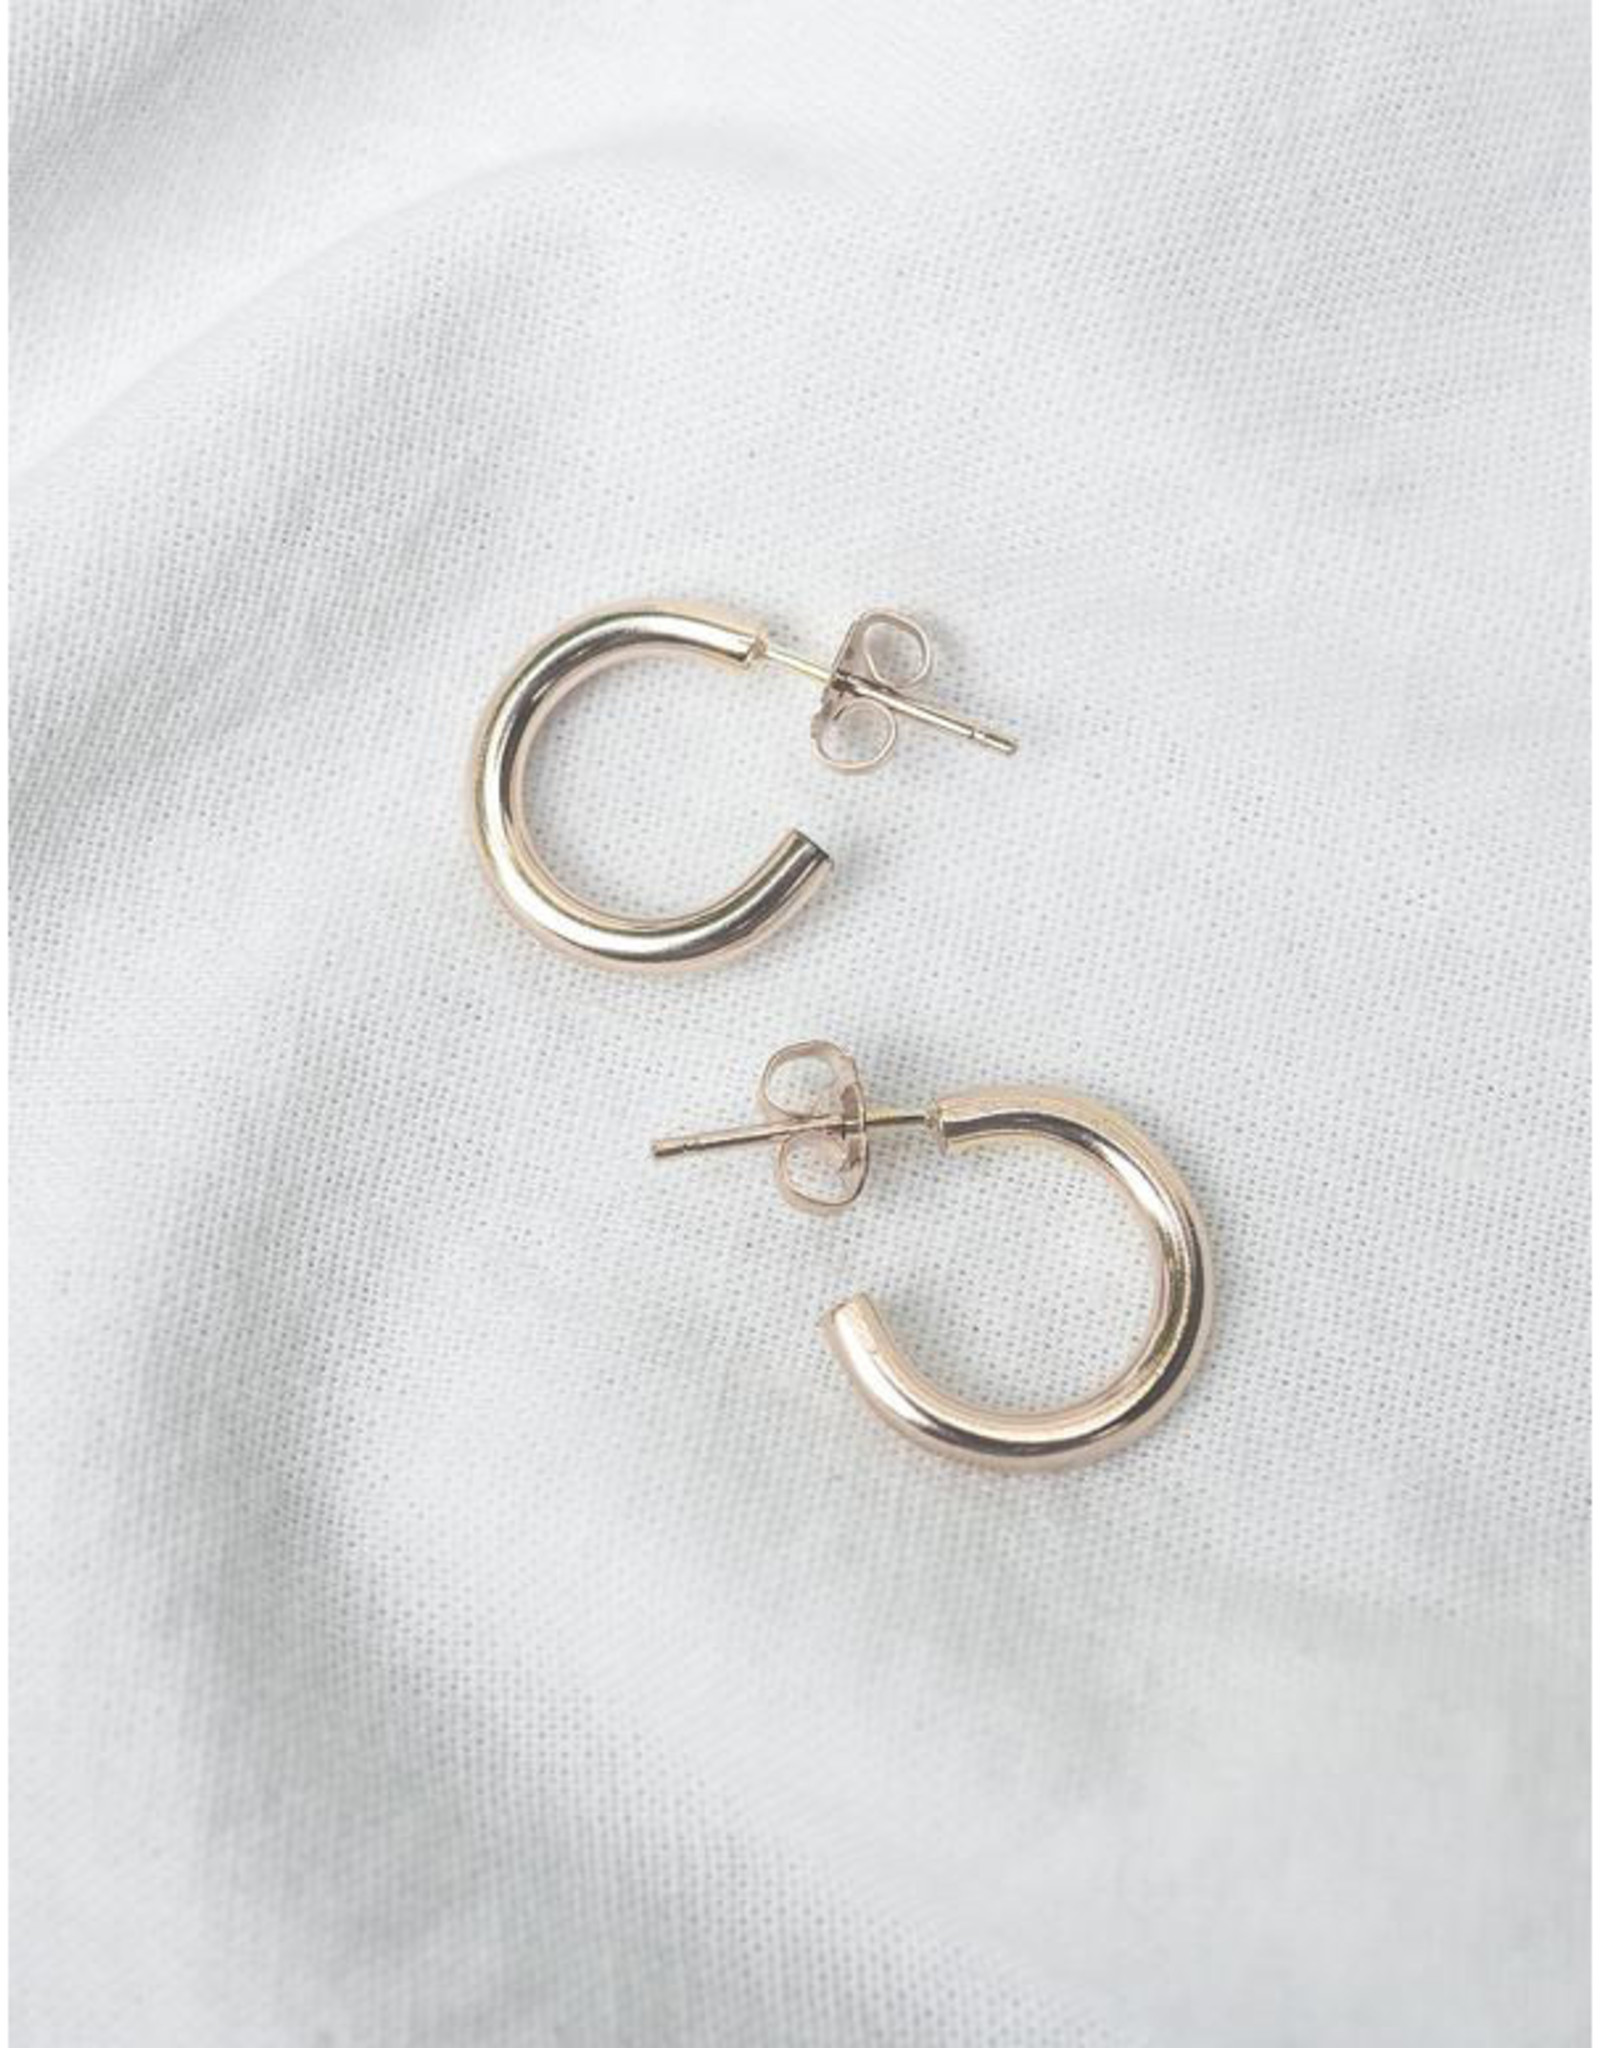 Hart + Stone Lark Hoops - Small - Sterling Silver